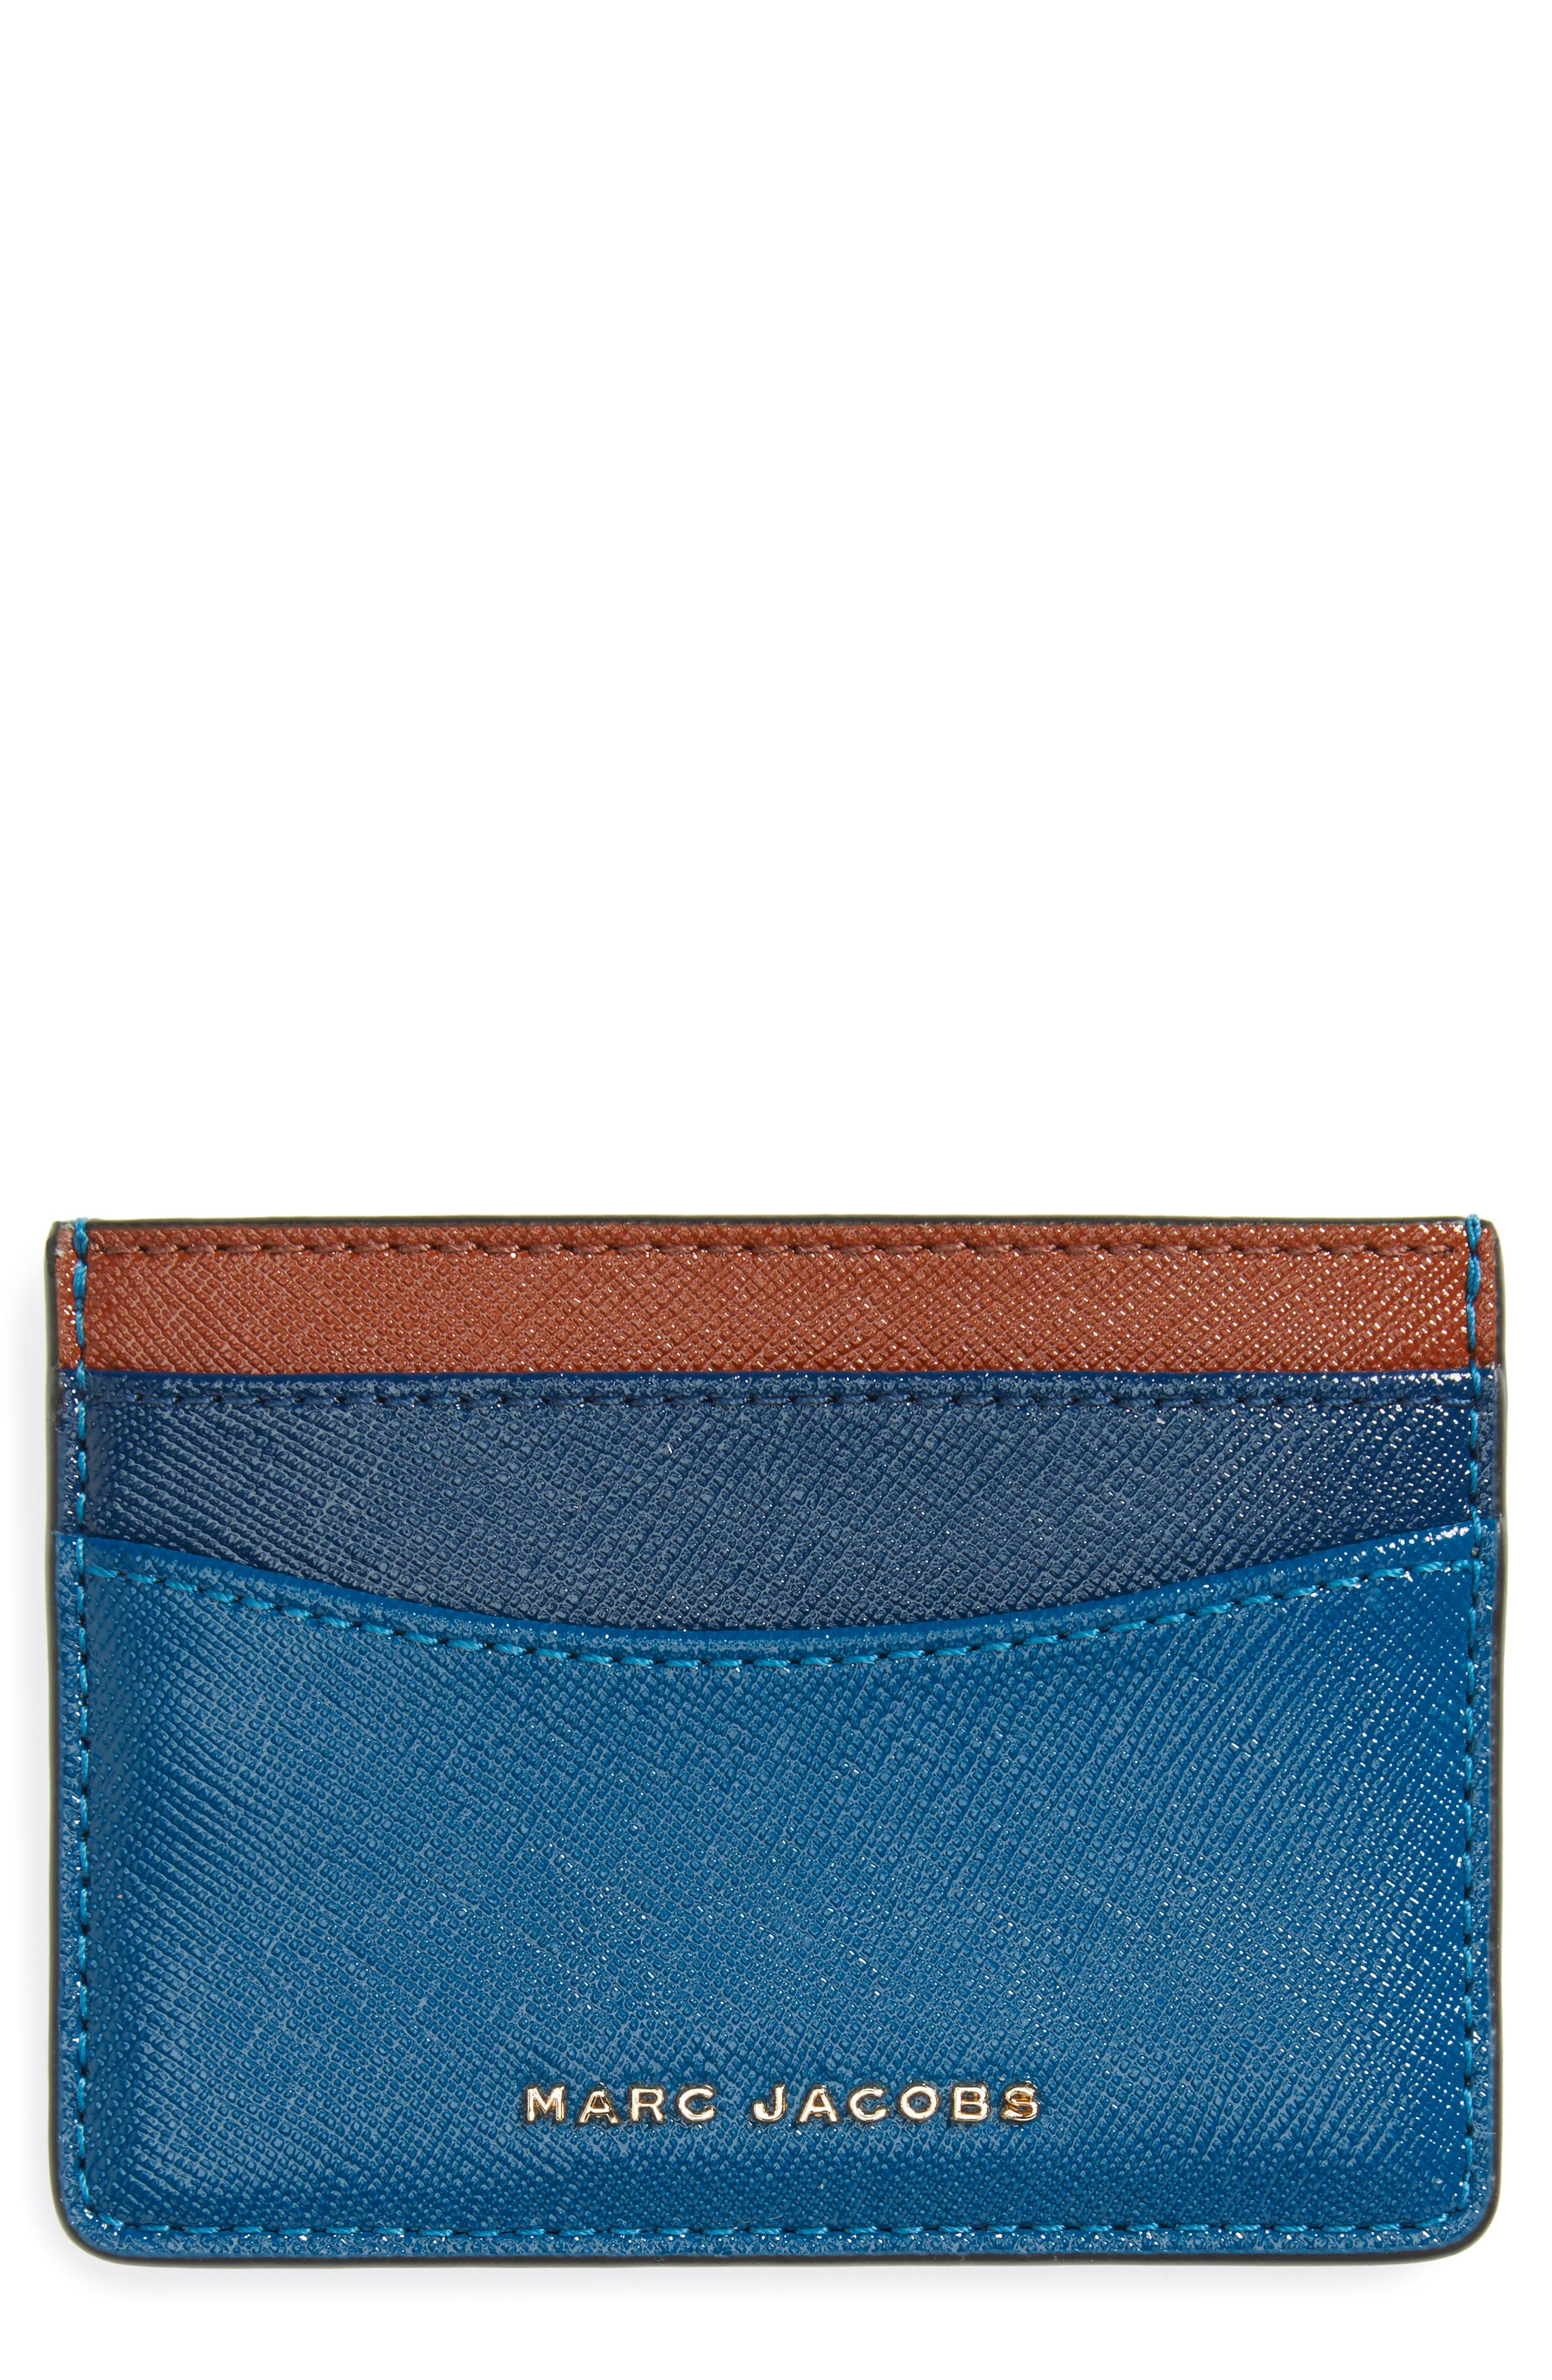 Alternate Image 1 Selected - MARC JACOBS Color Block Saffiano Leather Card Case